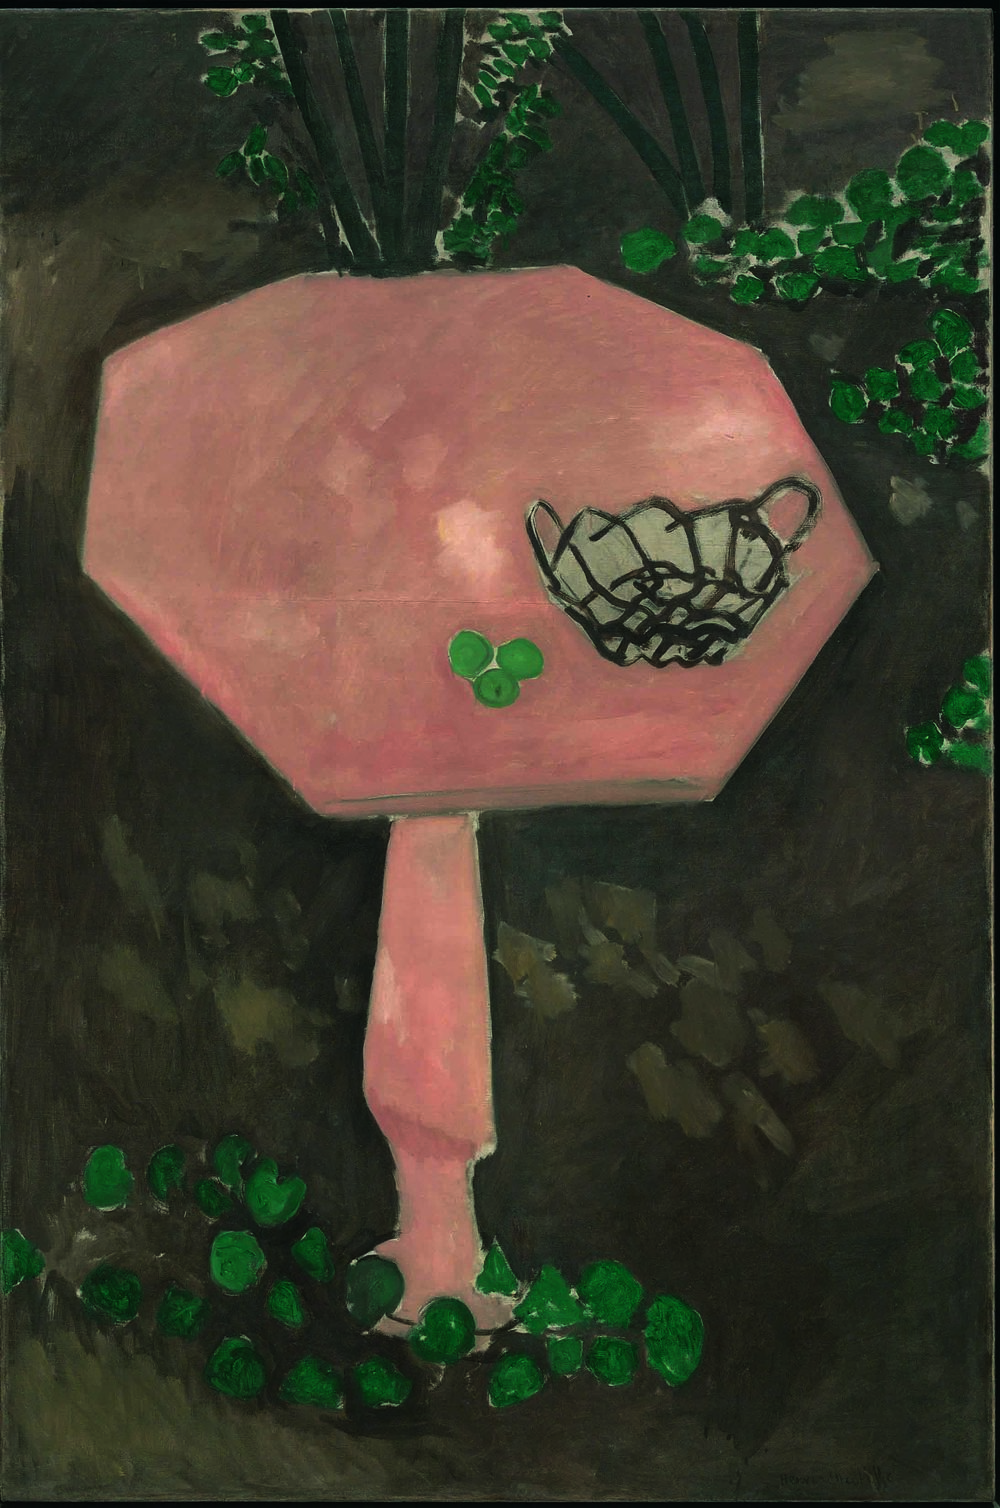 Henri Matisse, The Rose Marble Table, Issy-les-Moulineaux, spring-summer 1917. Oil on canvas, 146 x 97 cm. The Museum of Modern Art, New York. Mrs. Simon Guggenheim Fund, 1956. Photo © 2015. Digital image, The Museum of Modern Art, New York/Scala, Florence / © Succession H. Matisse.